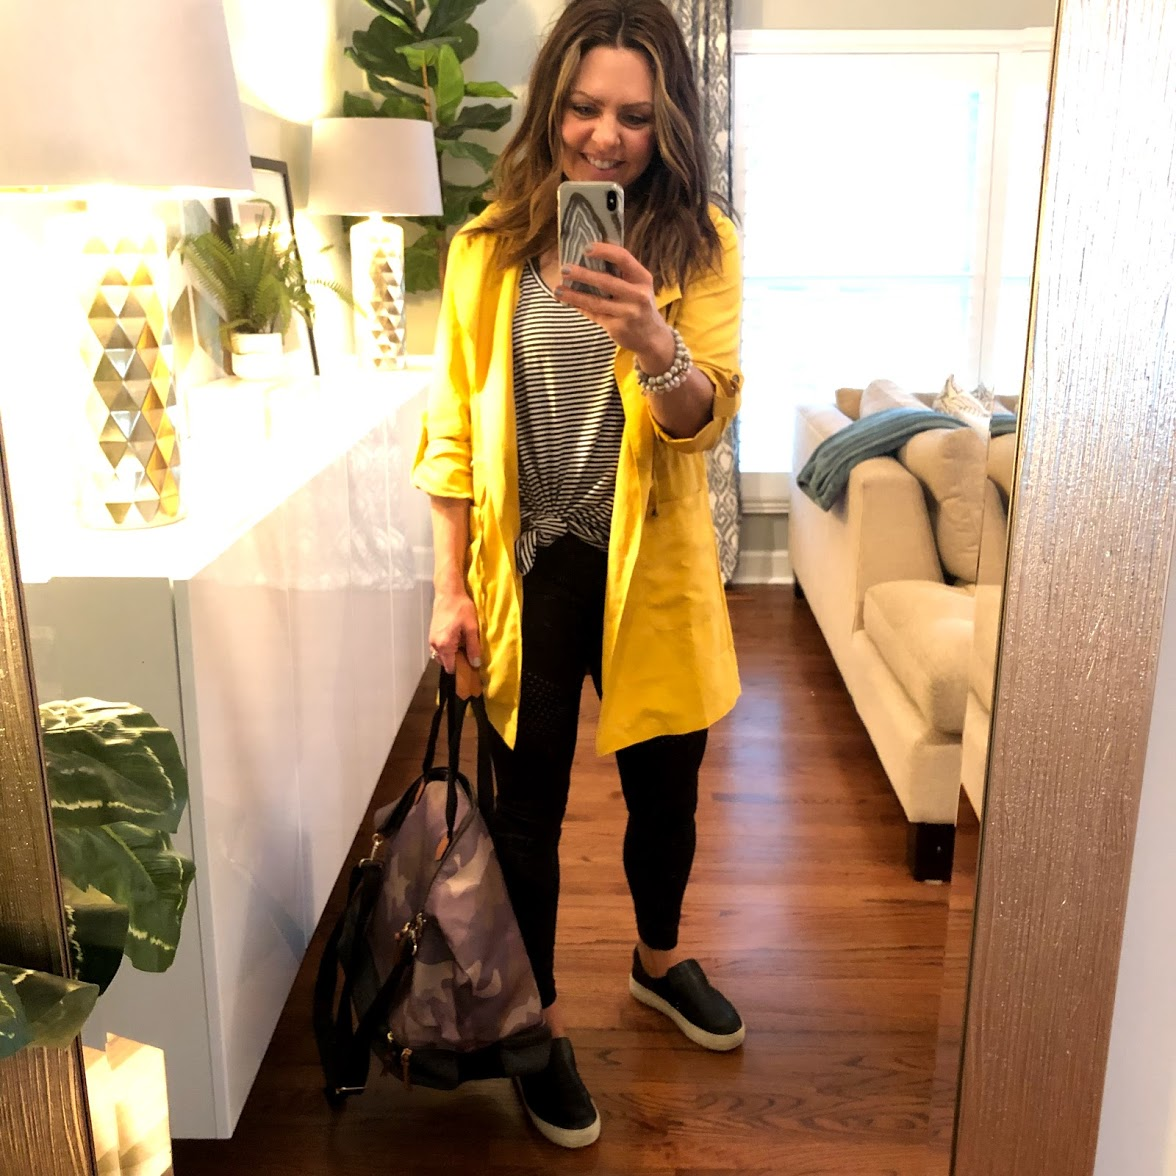 This is the outfit I wore for my flight today: Comfy versatile slide sneakers, black leggings, striped top, and yellow jacket.